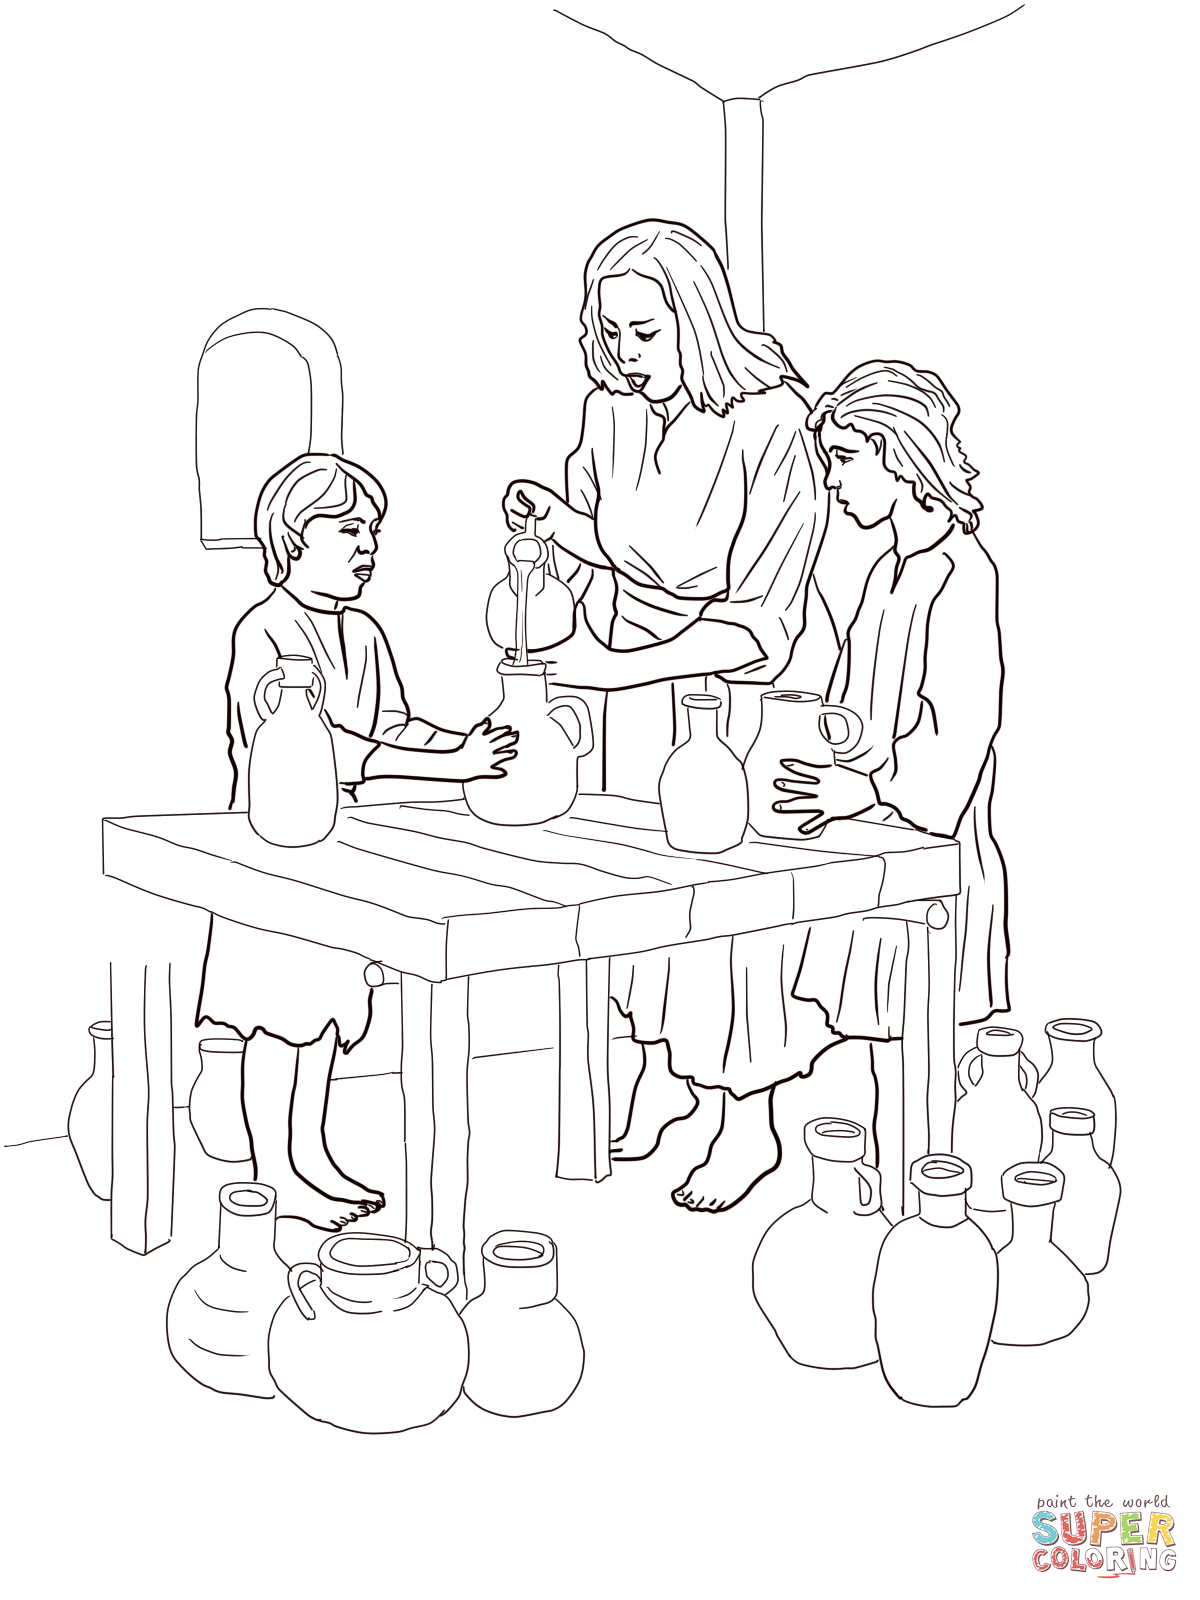 Oil Coloring Pages